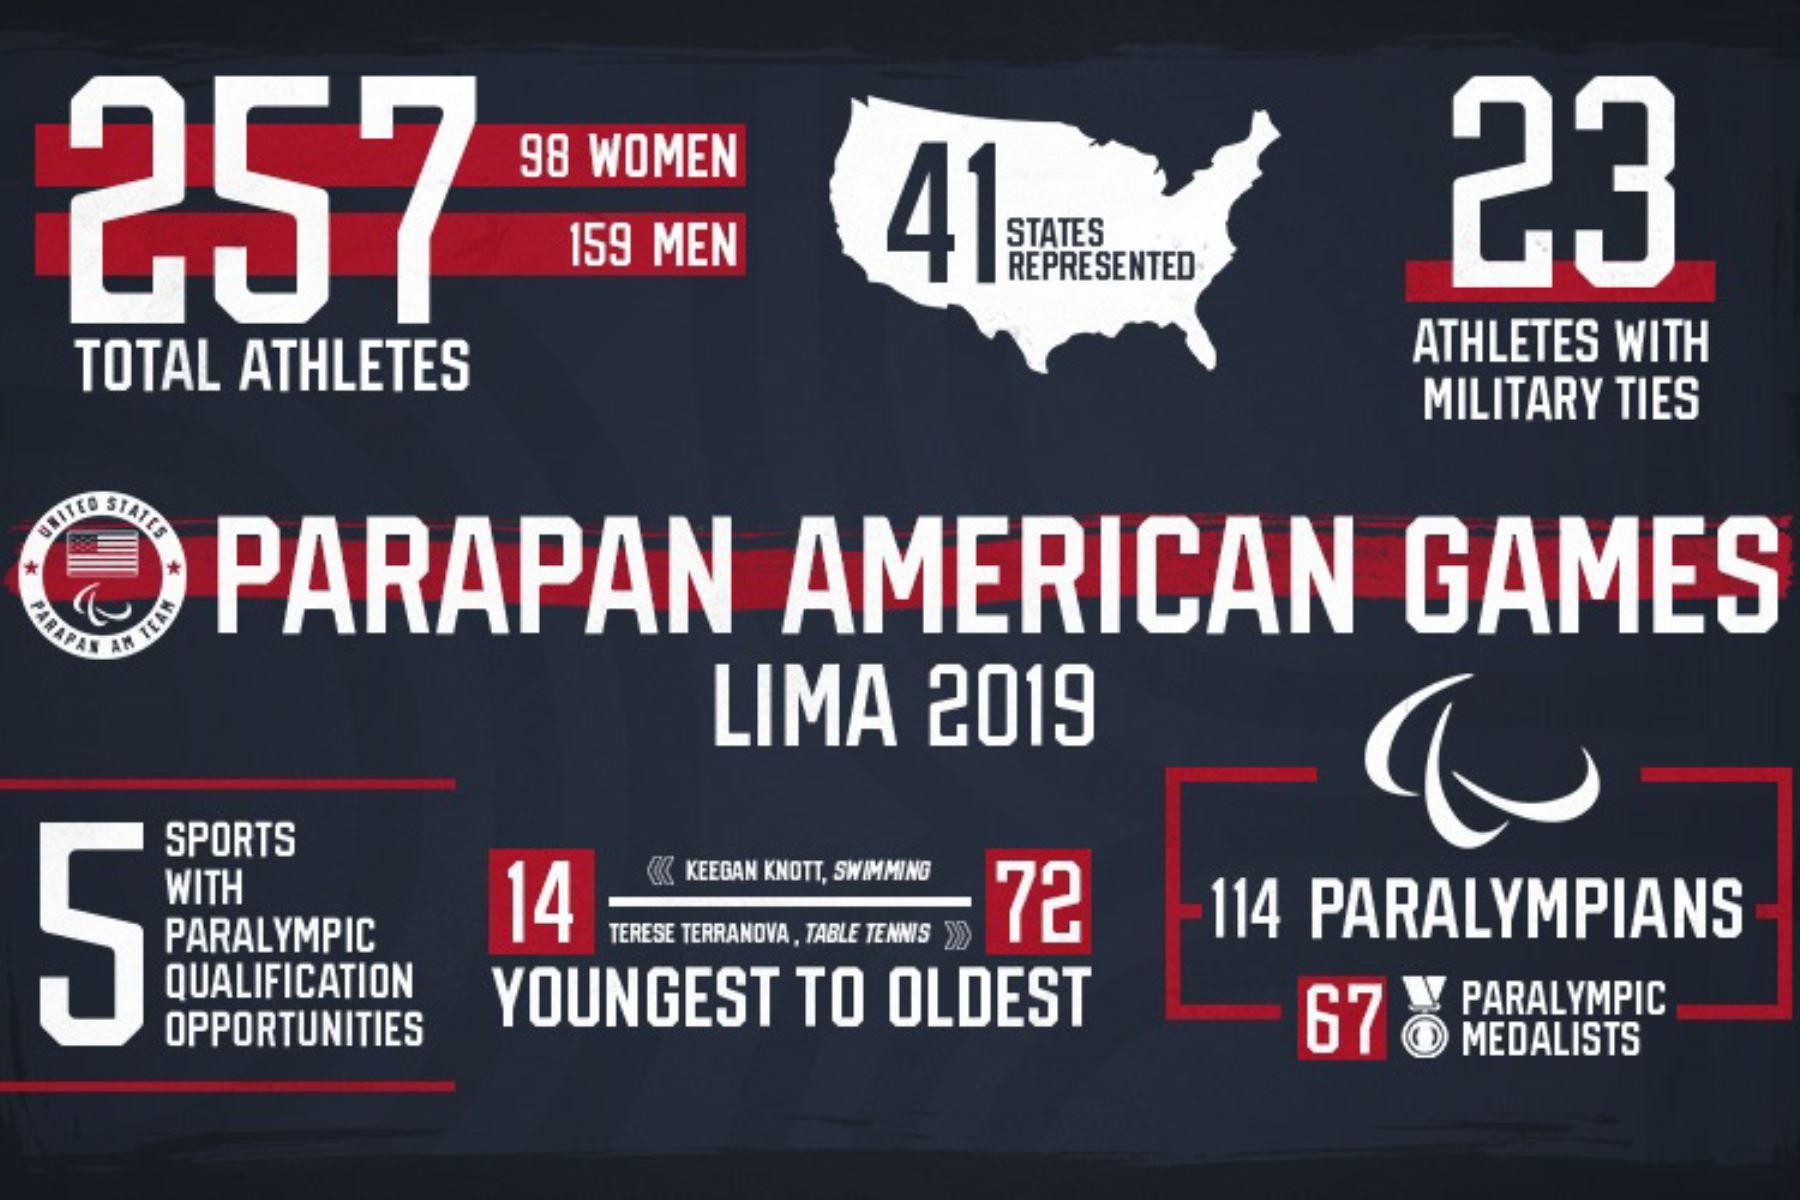 Lima 2019: U S  Olympic & Paralympic Committee announces